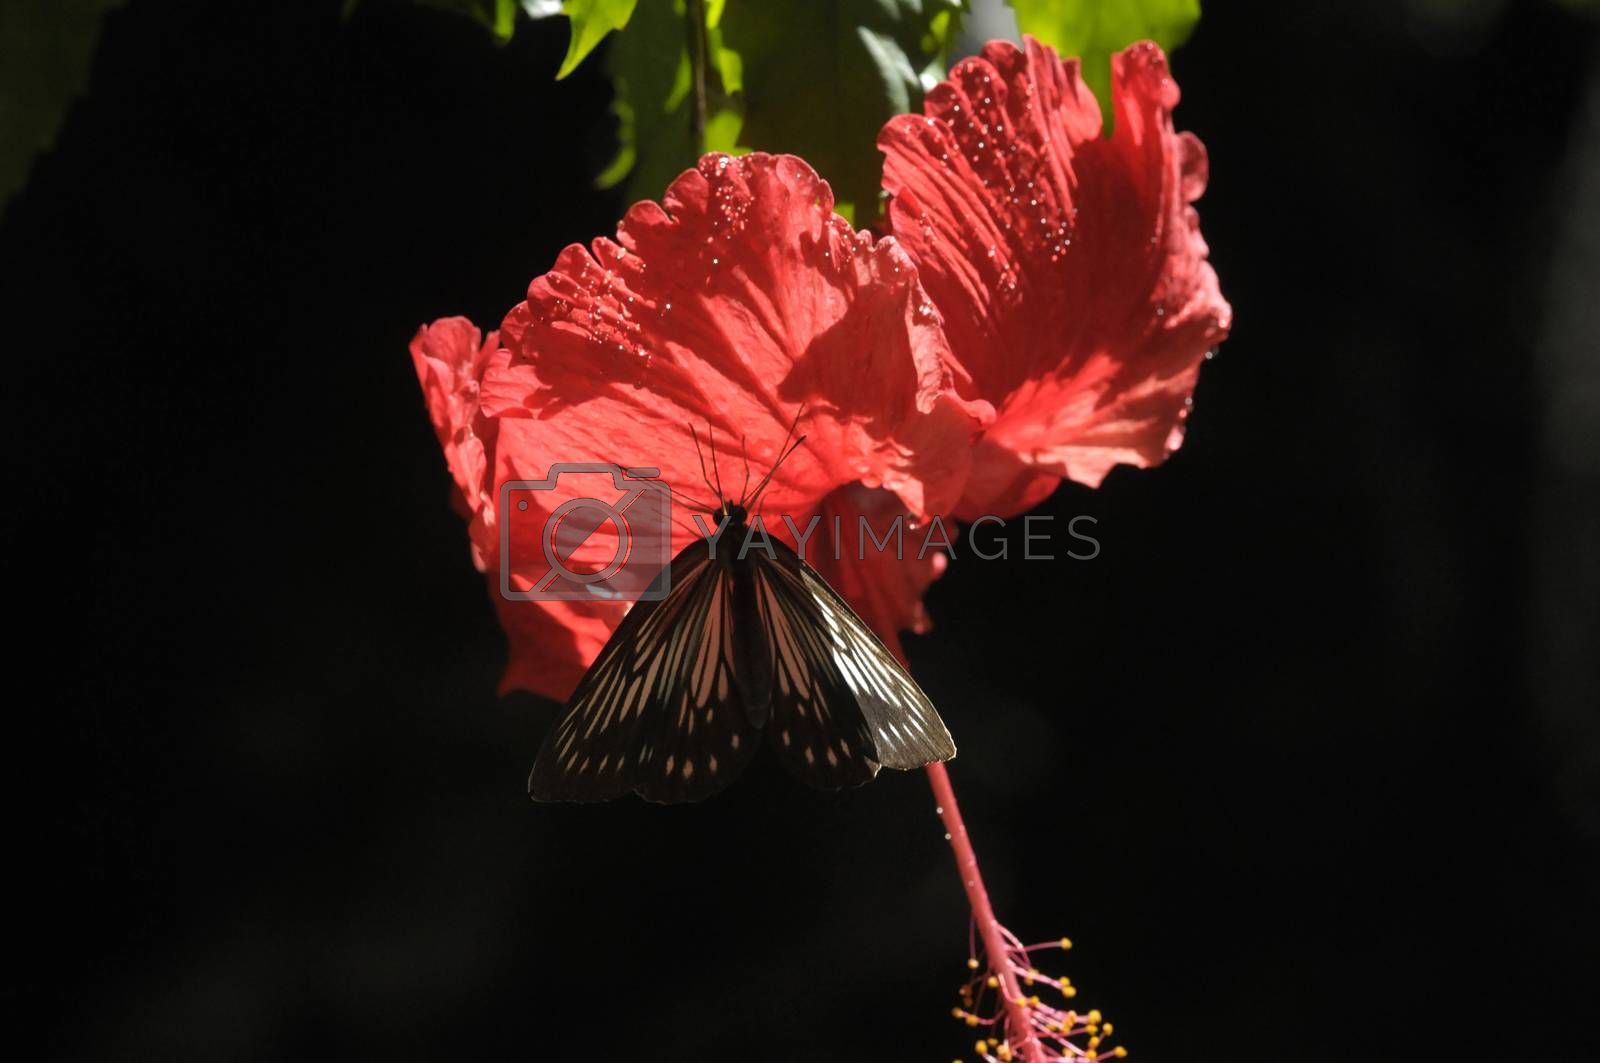 butterfly on the hibiscus flower by antonihalim